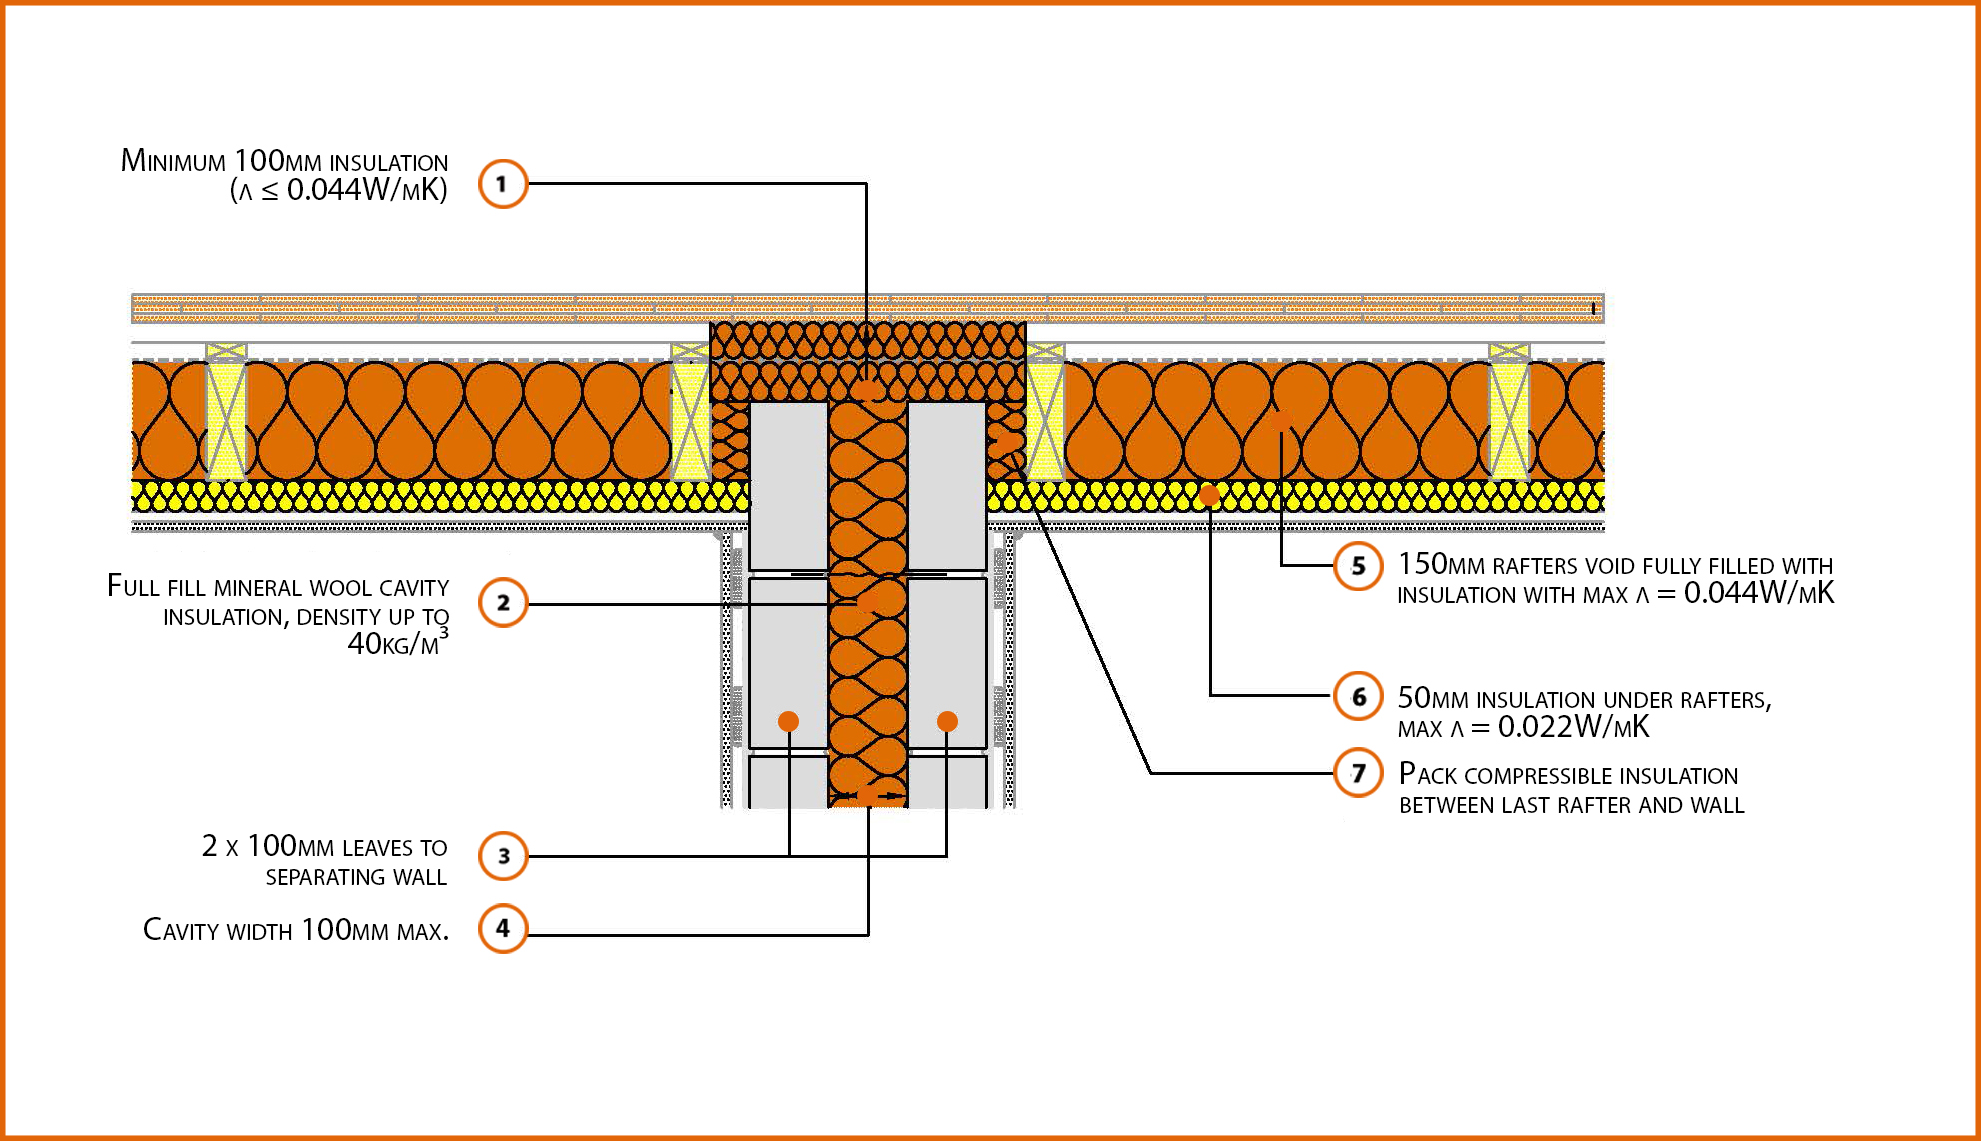 P5pcff1 Roof Insulation At Rafter Level